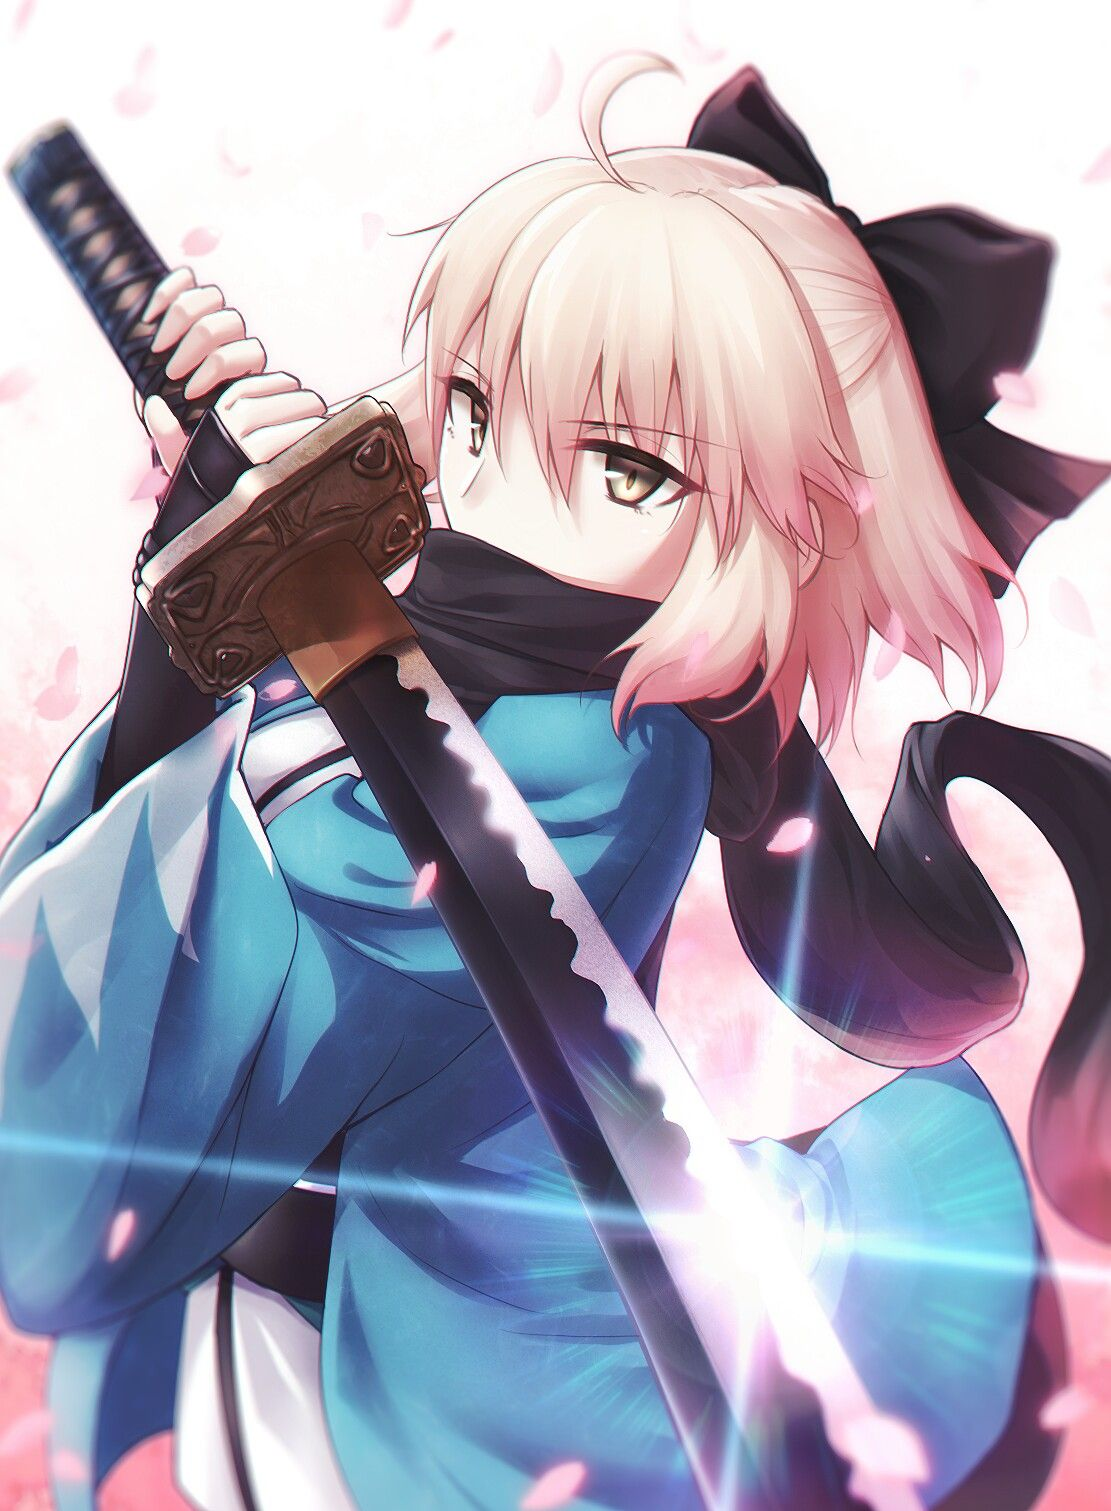 Pin by Xyper on Fate series Anime characters, Anime